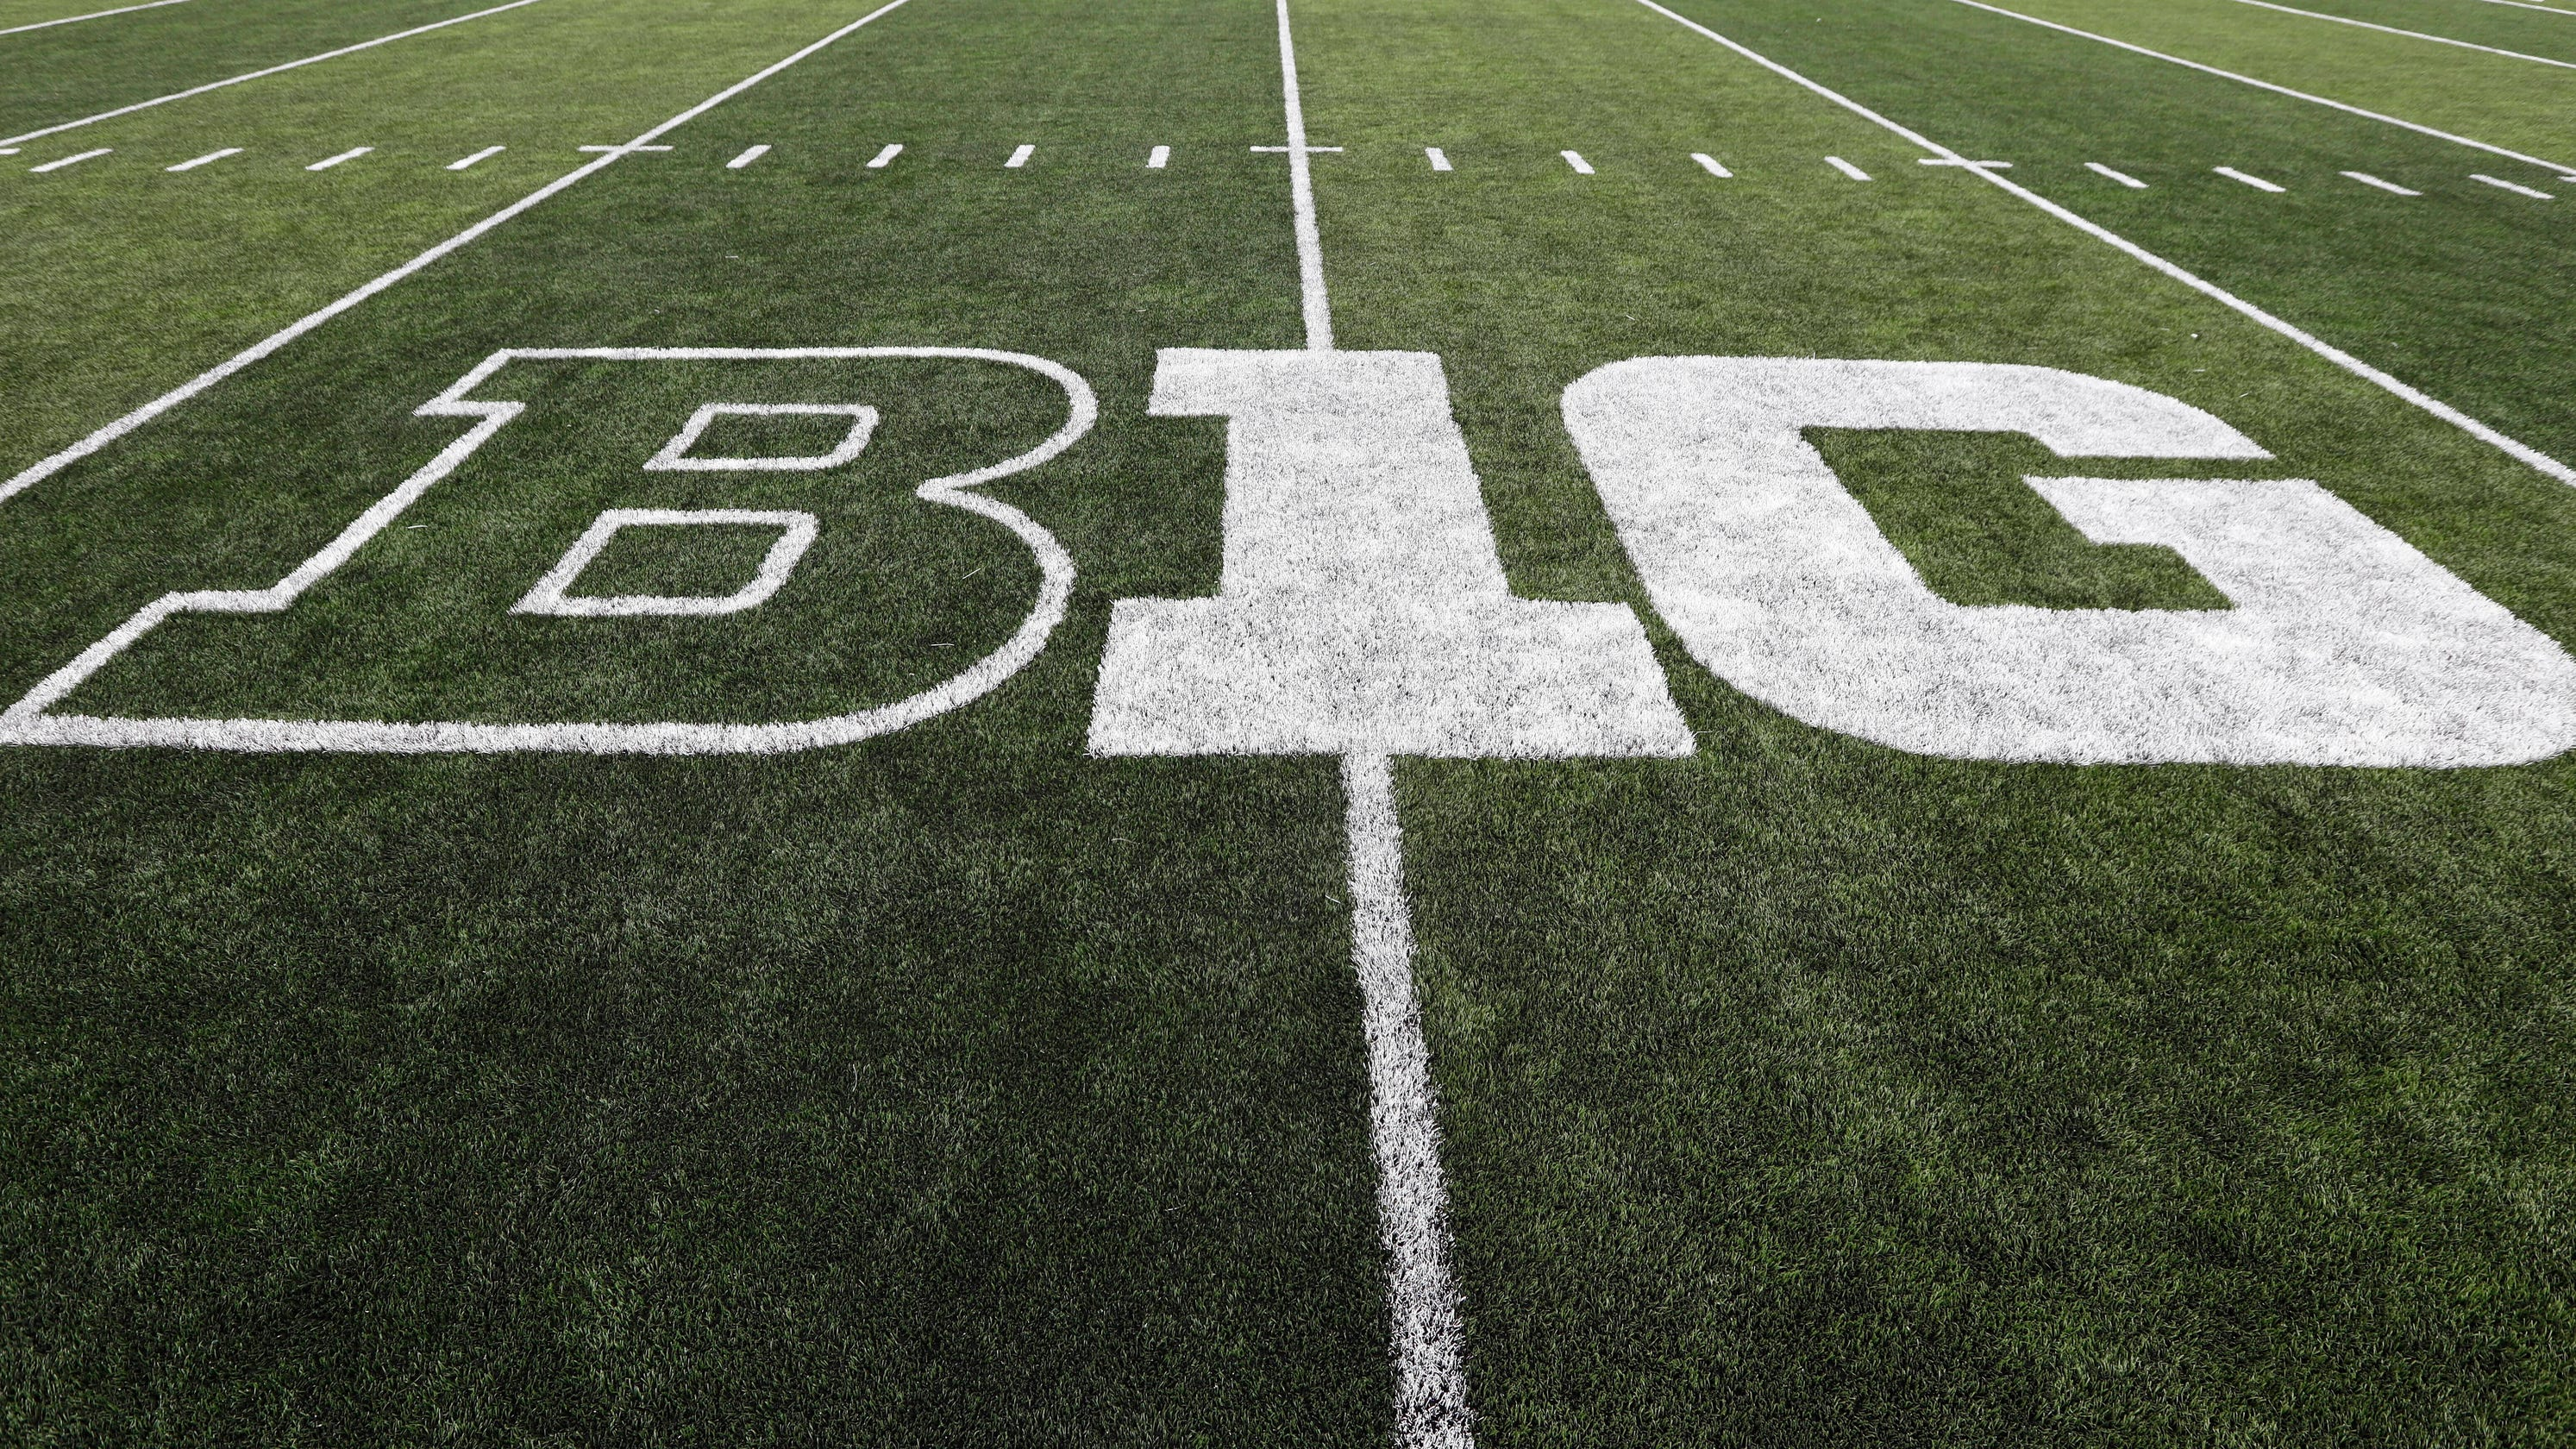 Bowing to pressure, Big Ten plans to begin eight-game football season Oct. 24